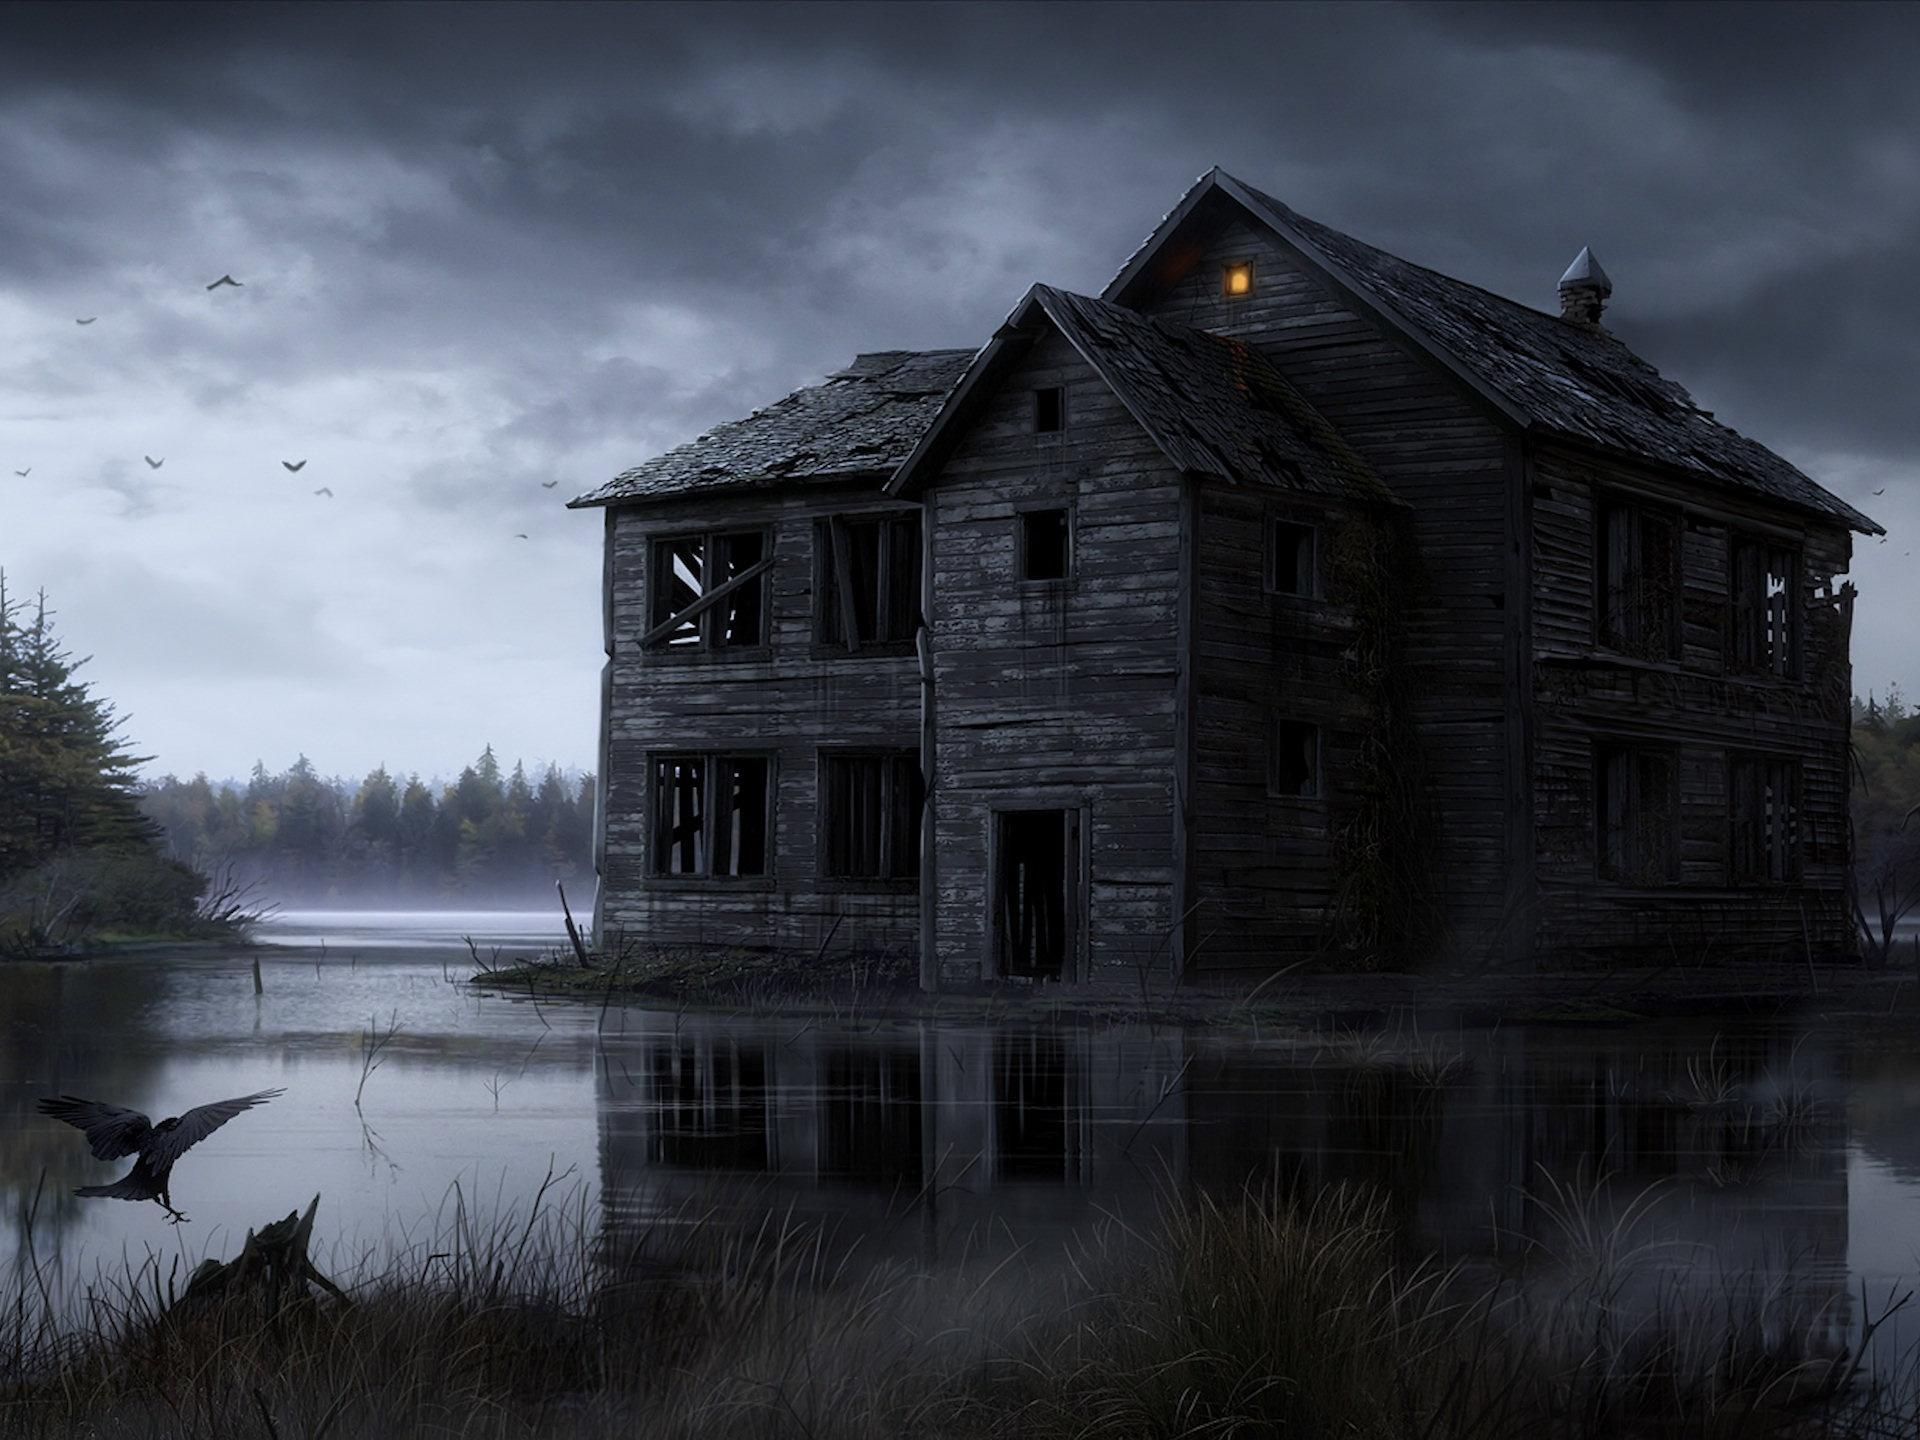 Google-Image-Result-for-http-khongthe-com-nature-dark-spooky-house-on-the-water-wallpaper-wpc9005597